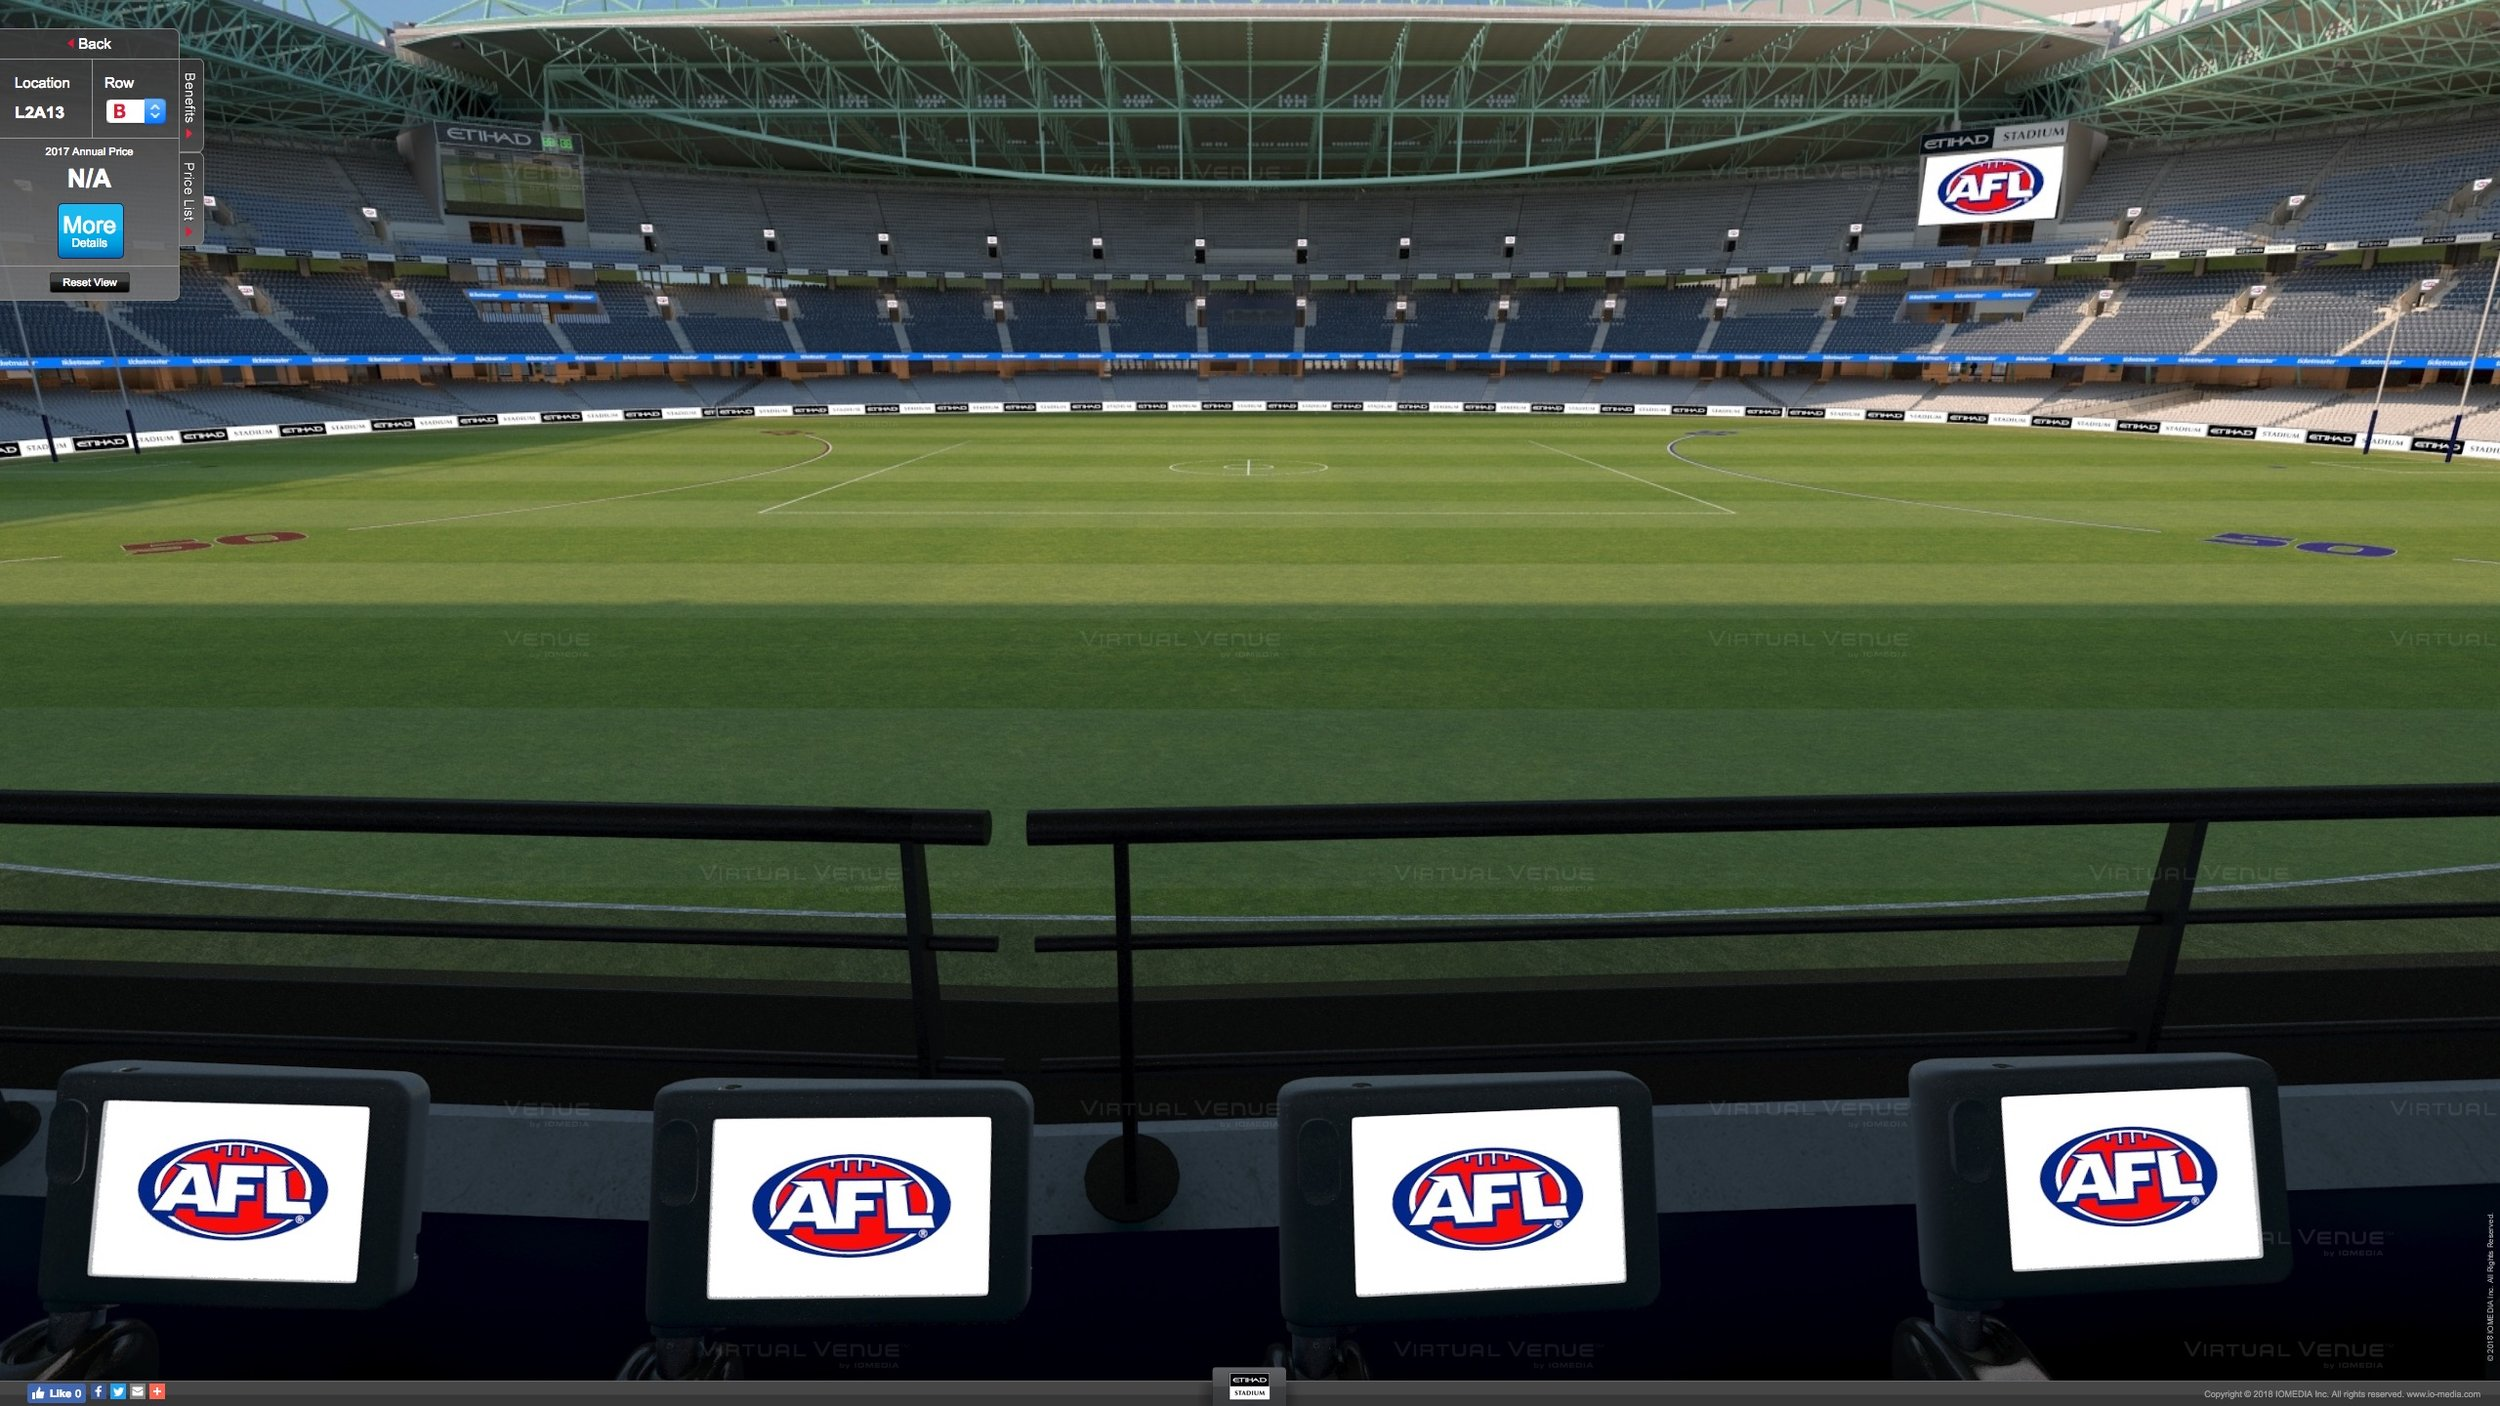 Essendon v Western Bulldogs Marvel Stadium Level 2 AFL tickets